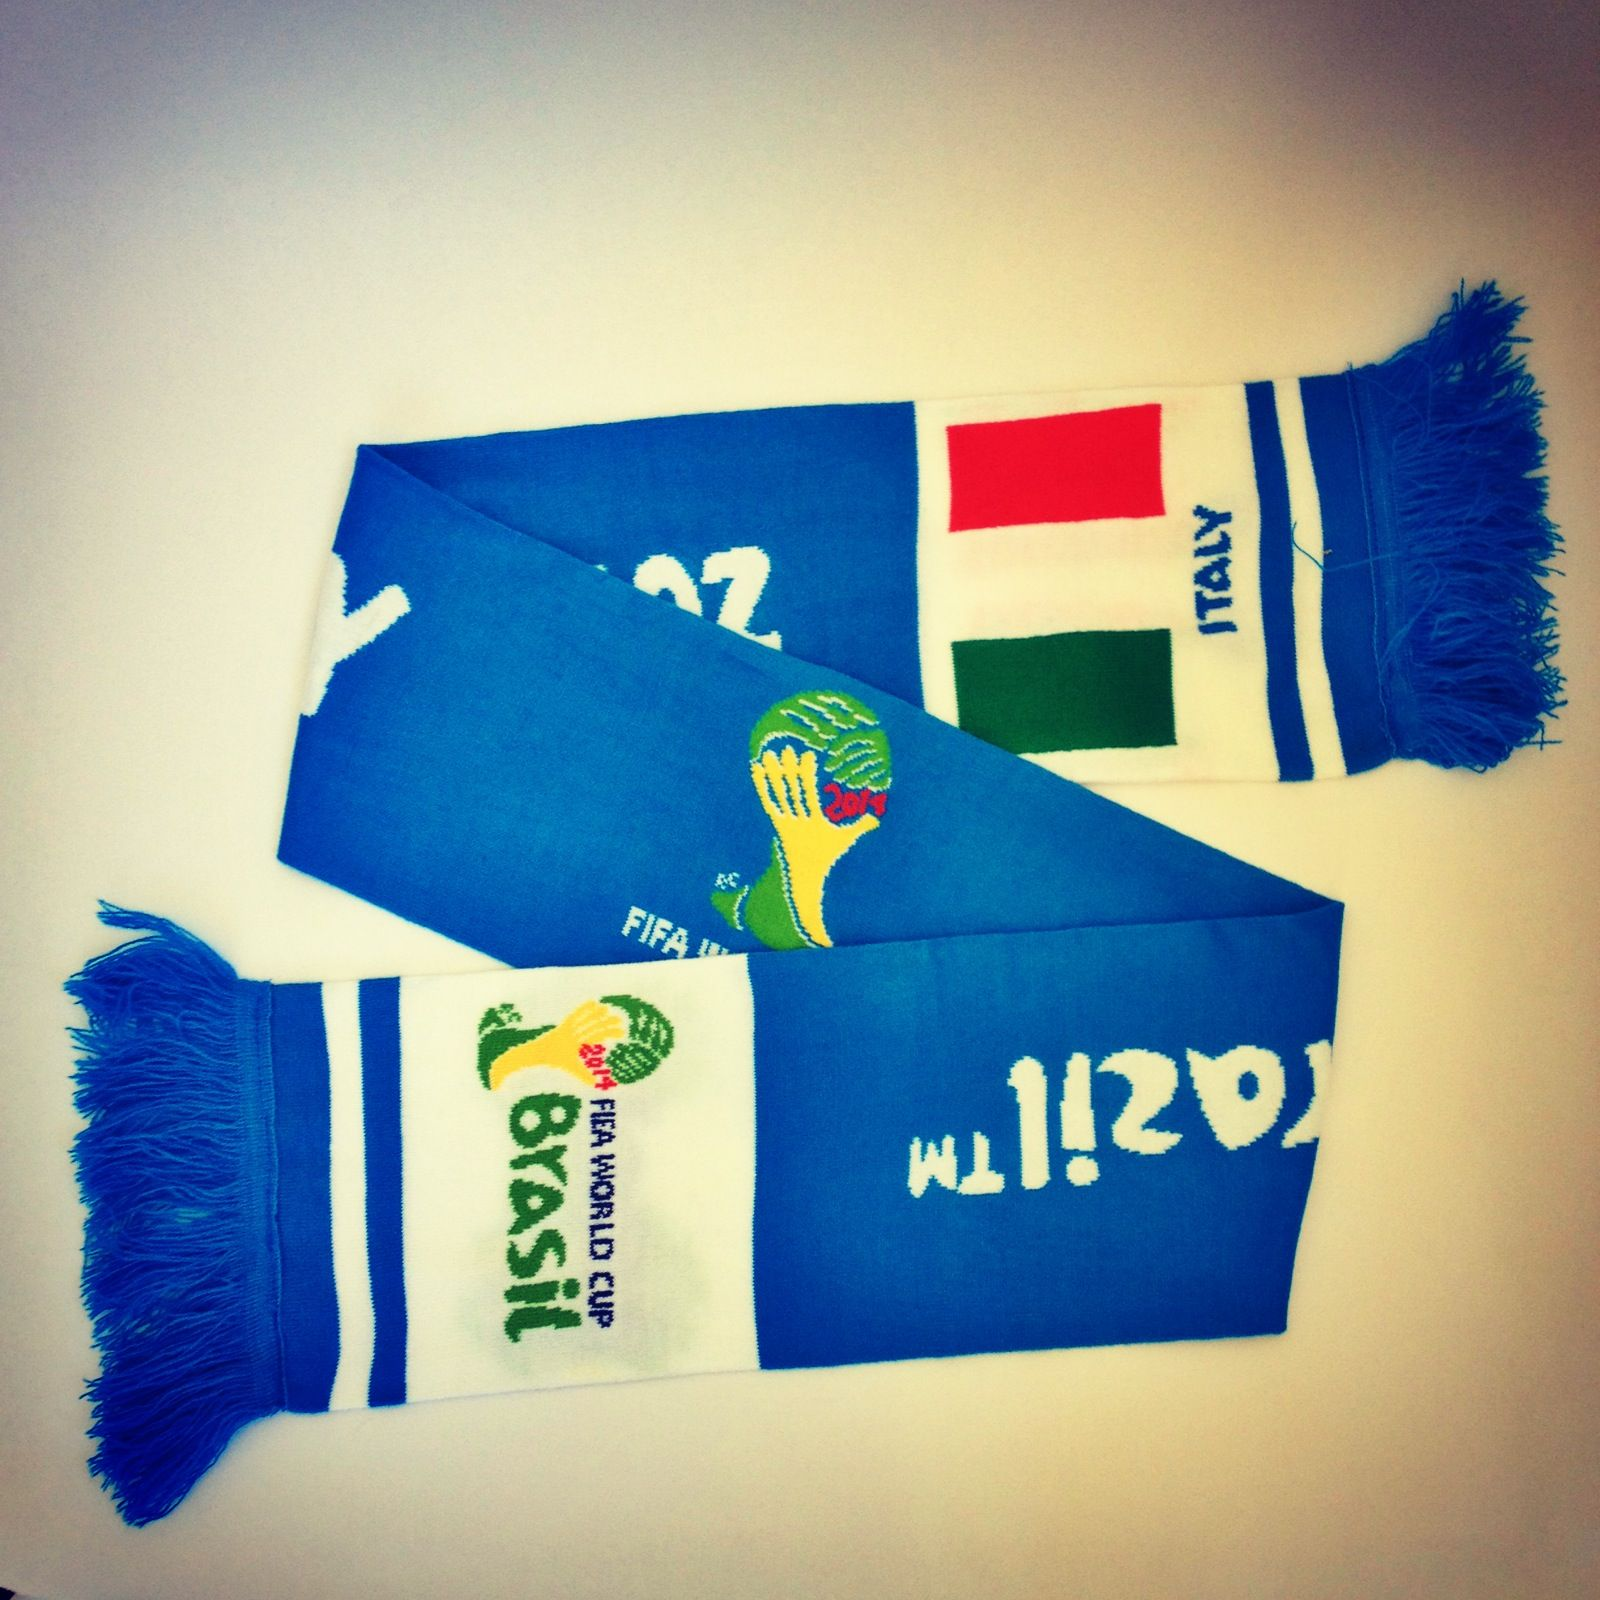 The #FIFA #WorldCup2014 Long Scarf in #Italy #WorldCup2014 #WorldCupBrasil #WorldCupBrazil #scarf #soccer #football #futbol #fan #fashion #style